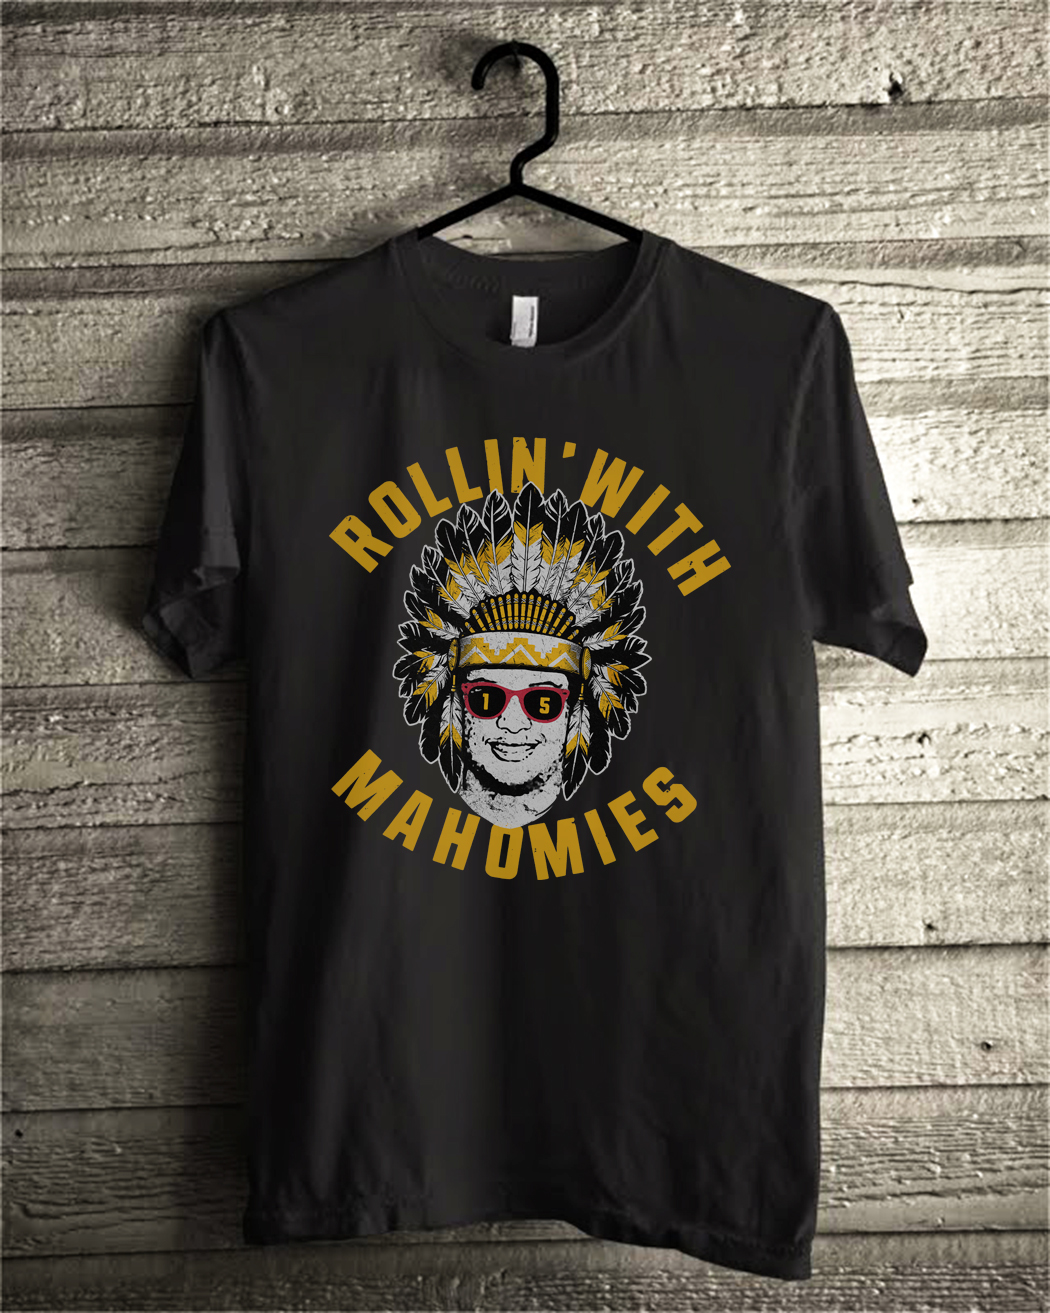 Rollin' With Mahomies Patrick Mahomes Chiefs Inspired shirt